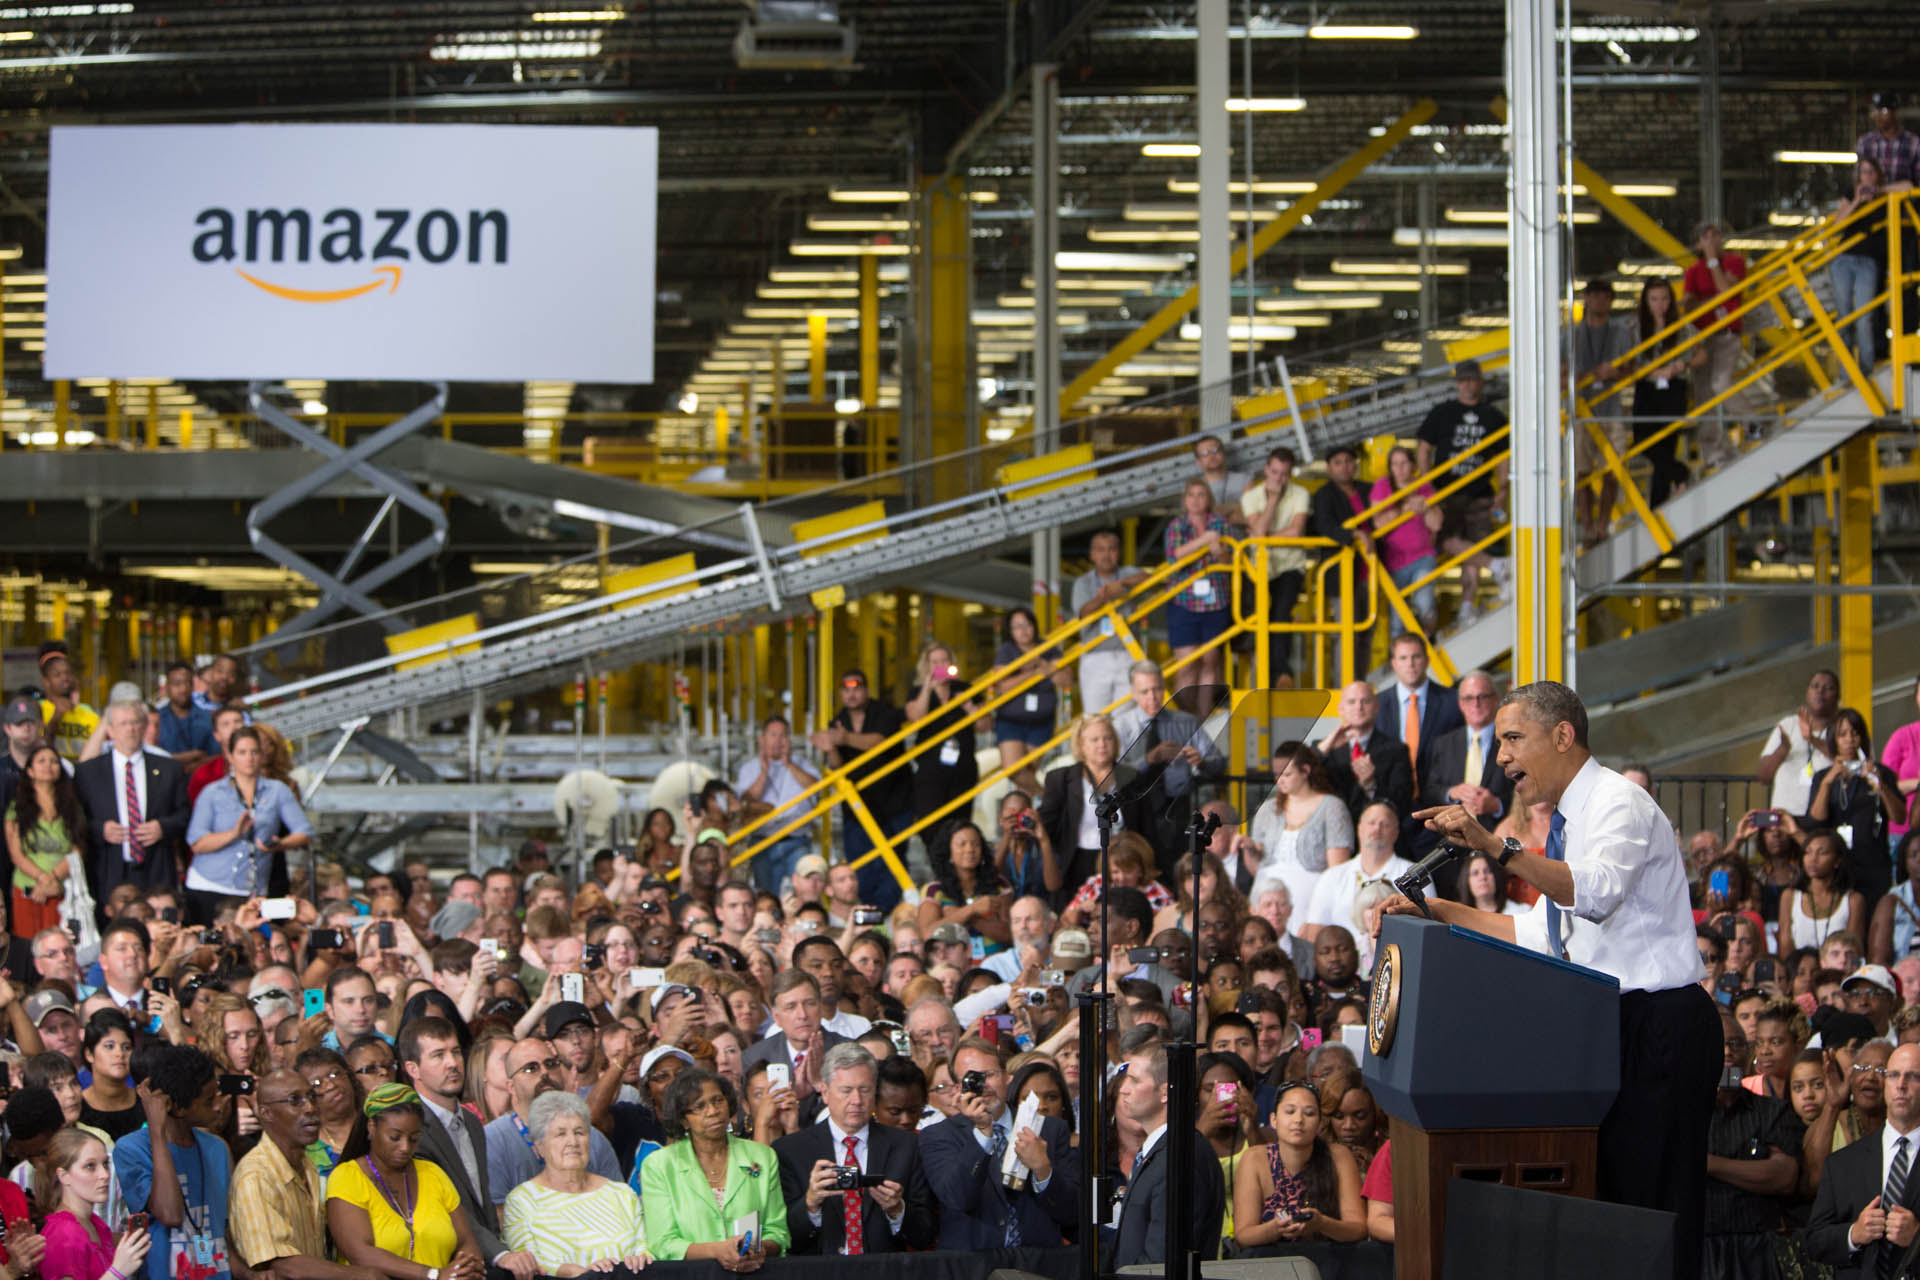 President Barack Obama delivers remarks on the economy at the Amazon Chattanooga Fulfillment Center in Chattnooga, Tenn., July 30, 2013. ( Official White House Photo by Amanda Lucidon )